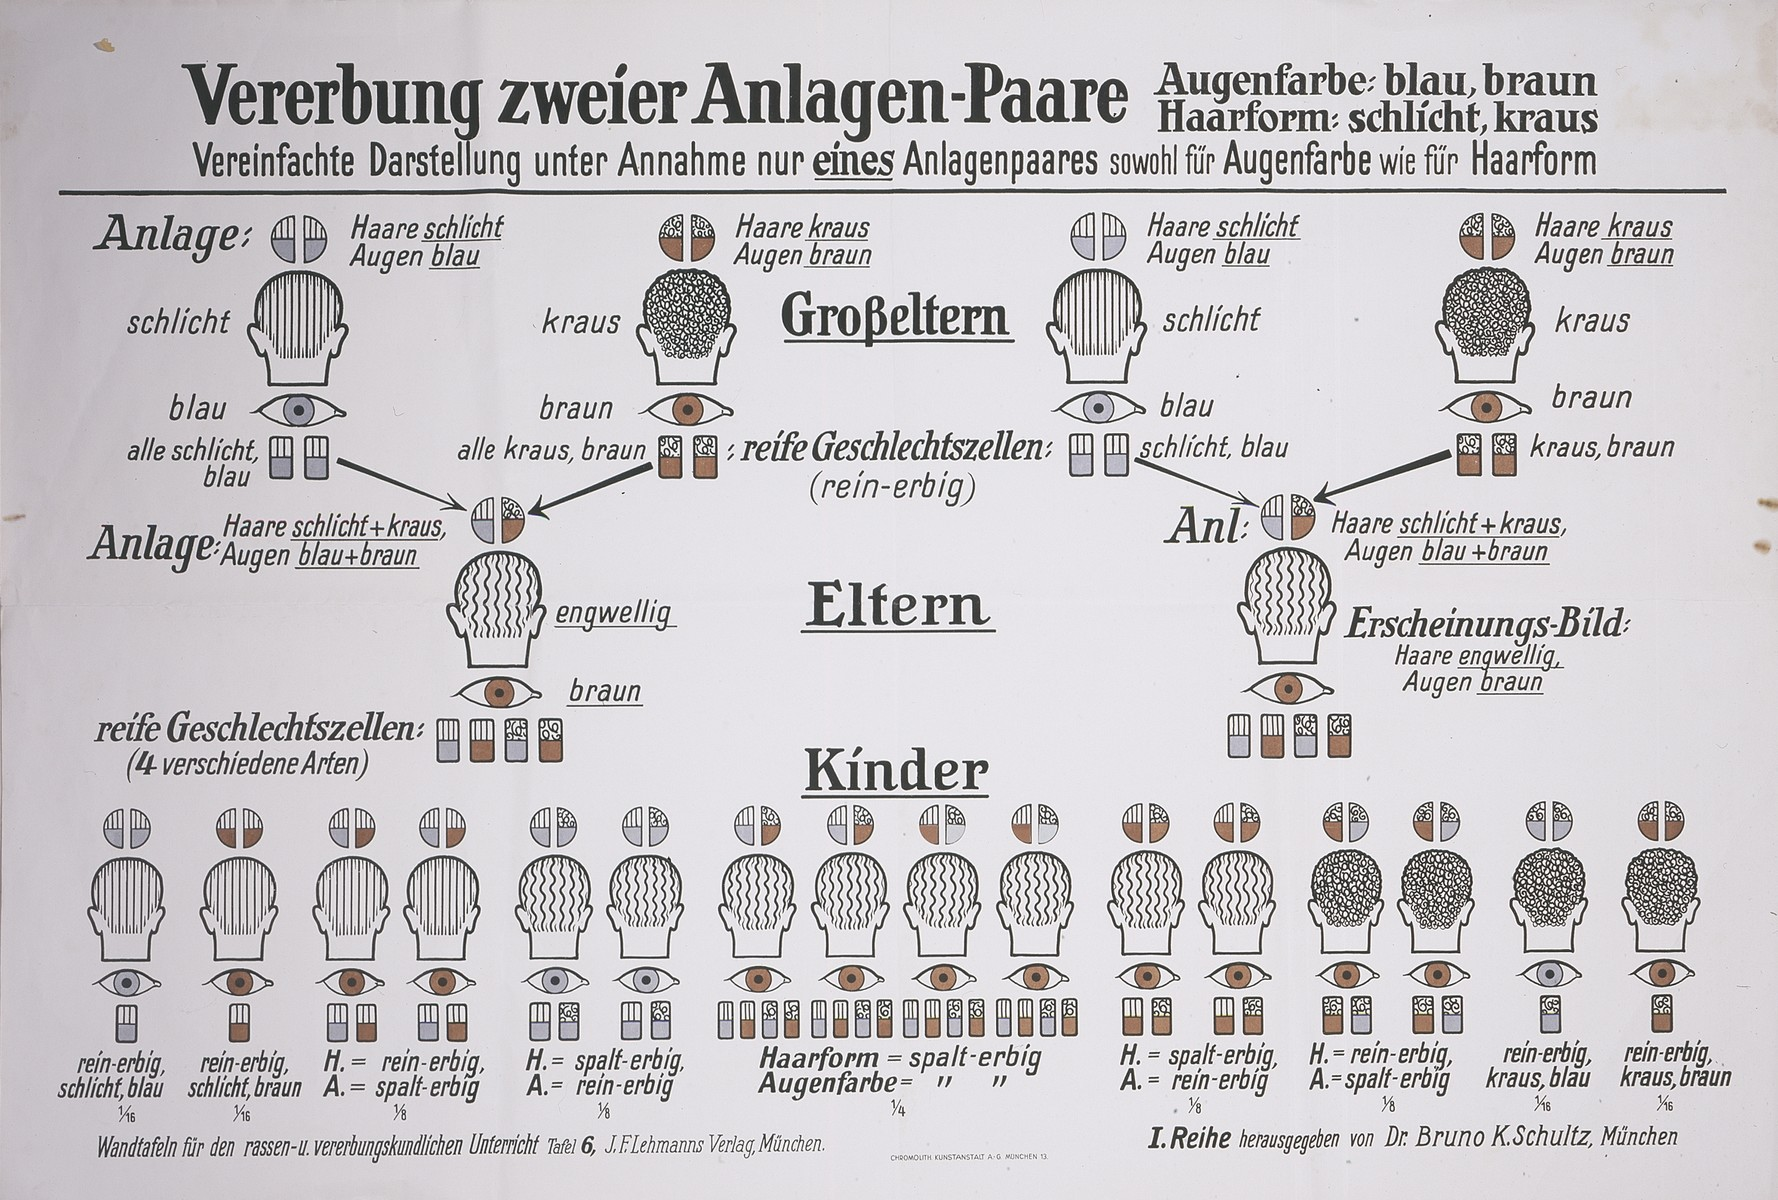 """A eugenics chart entitled: """"Hereditary traits passed down from two mates.  Simplified portrayal [of hereditary traits] given the assumption of only one pair of mates both for eye color and hair type.""""  The chart was published by Dr. Bruno K. Schultz, Munich."""